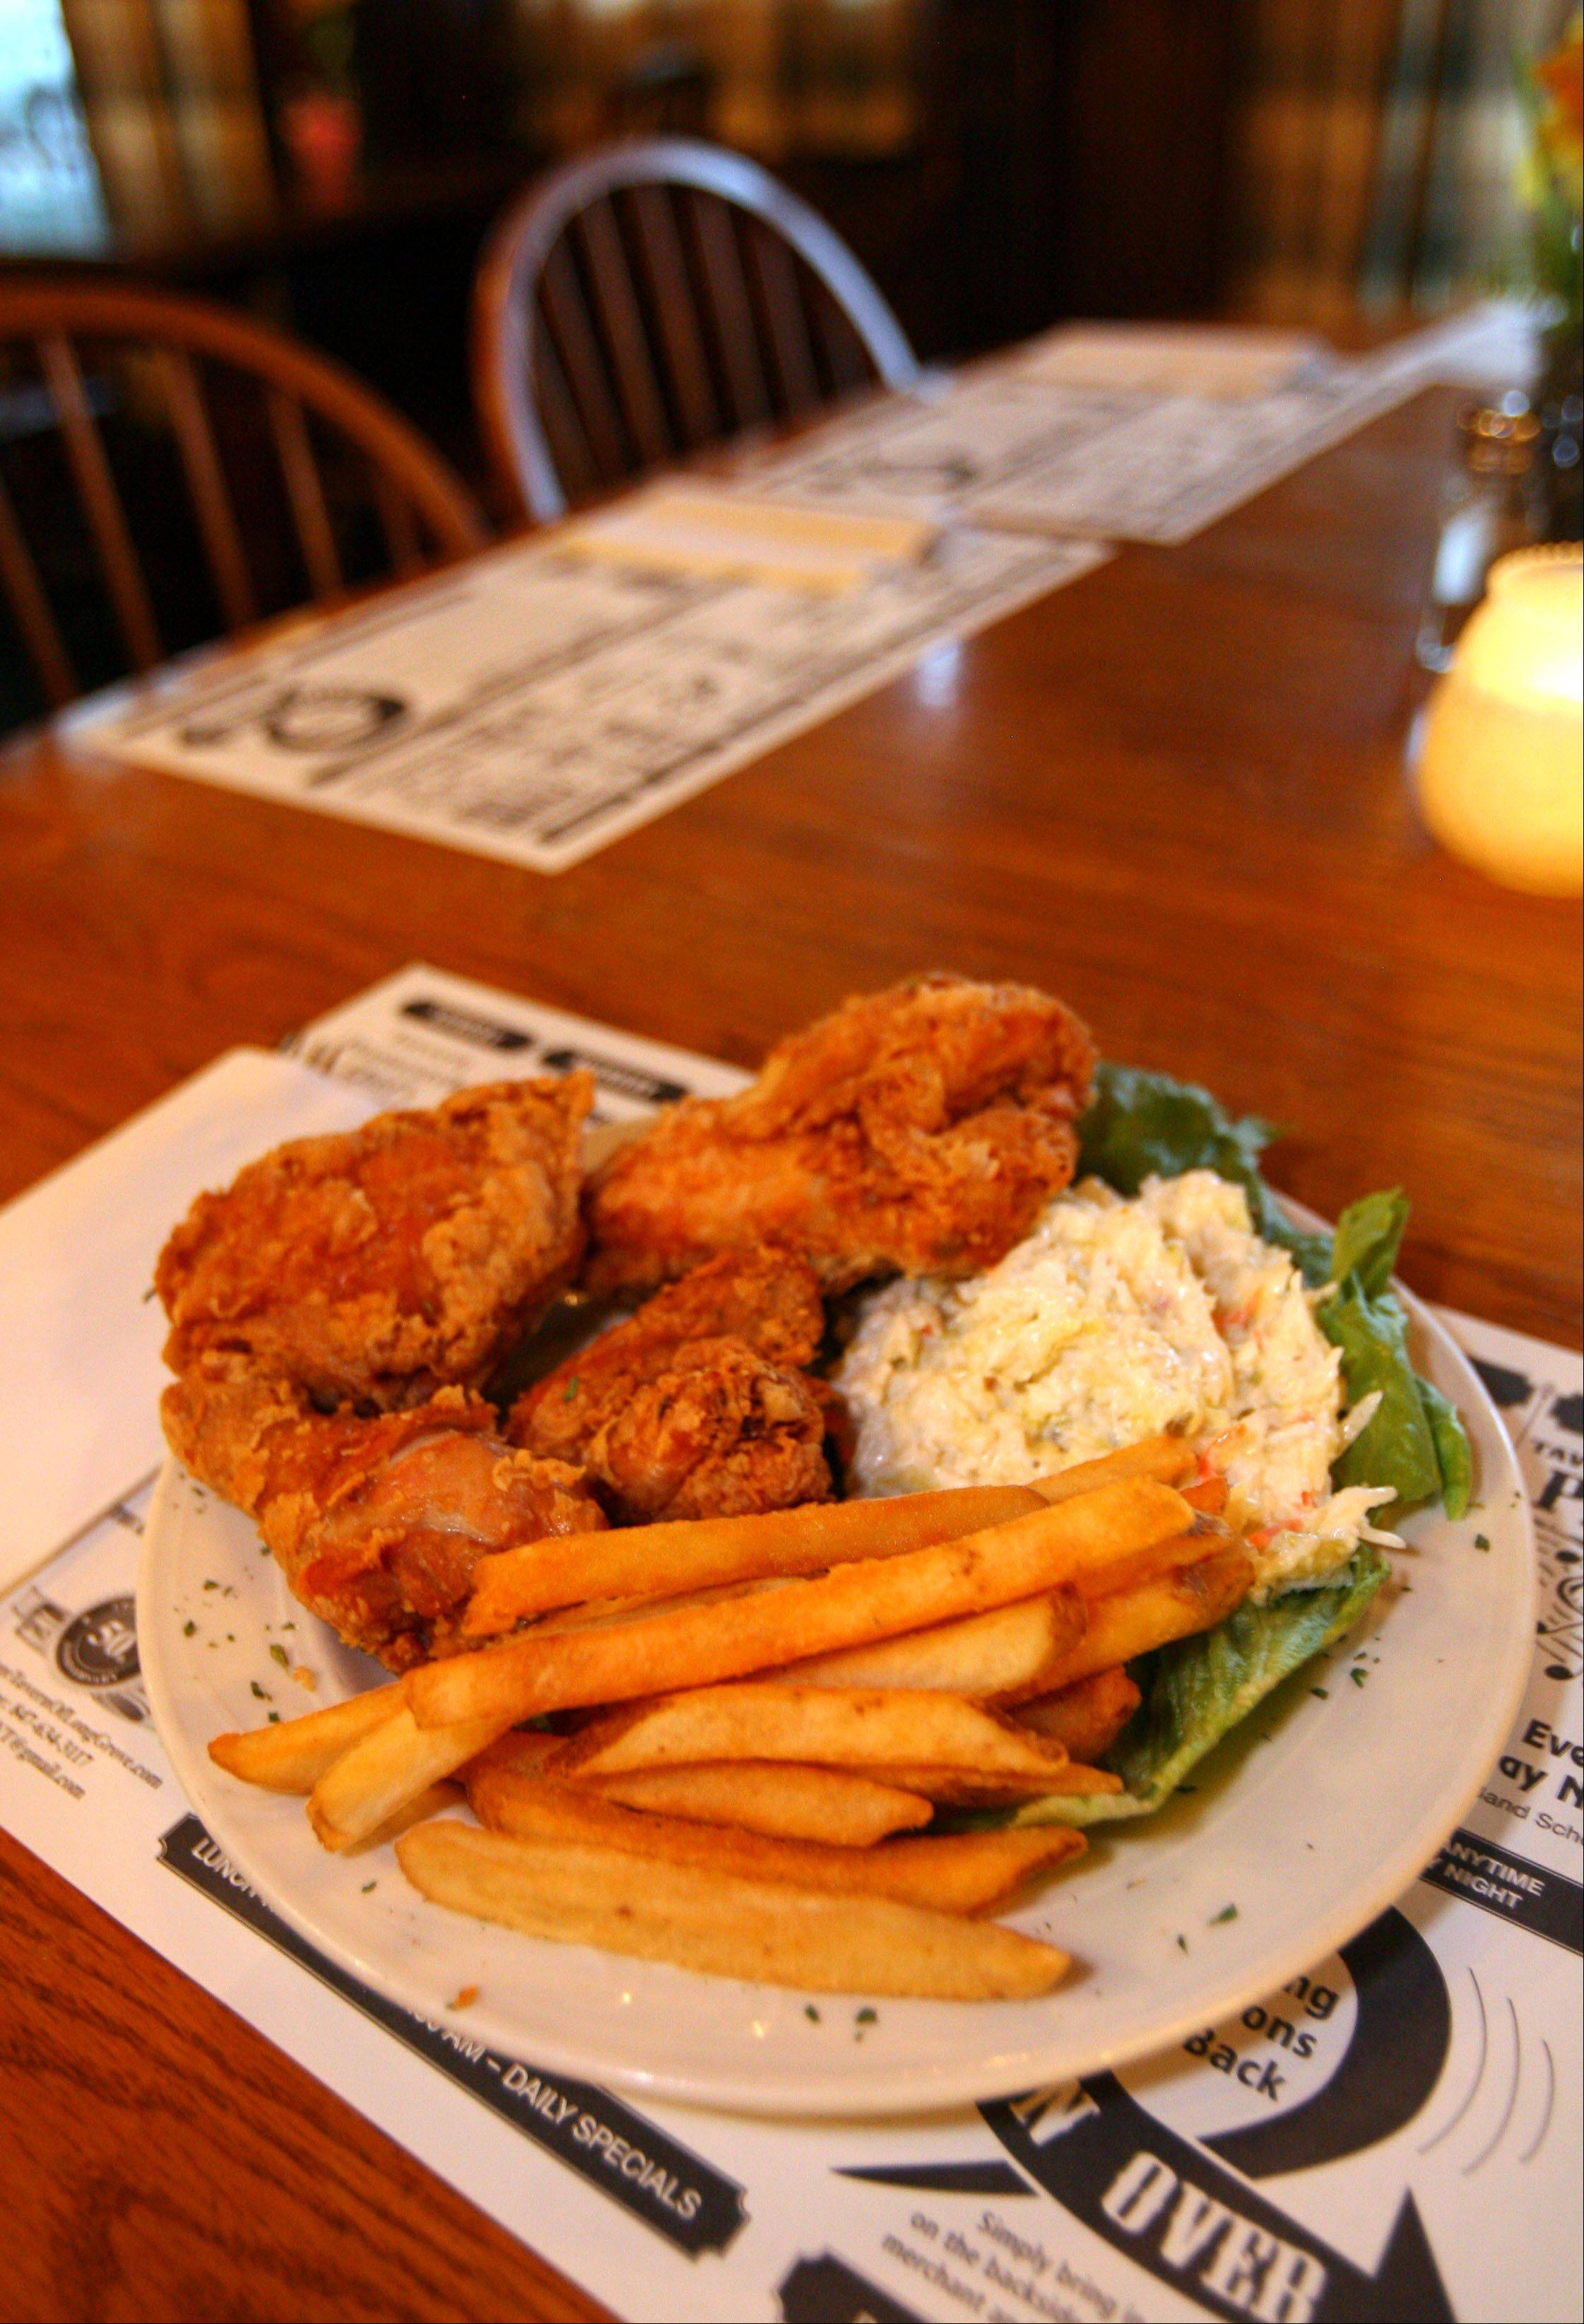 Broasted chicken is one of the house specialties at The Village Tavern in Long Grove.